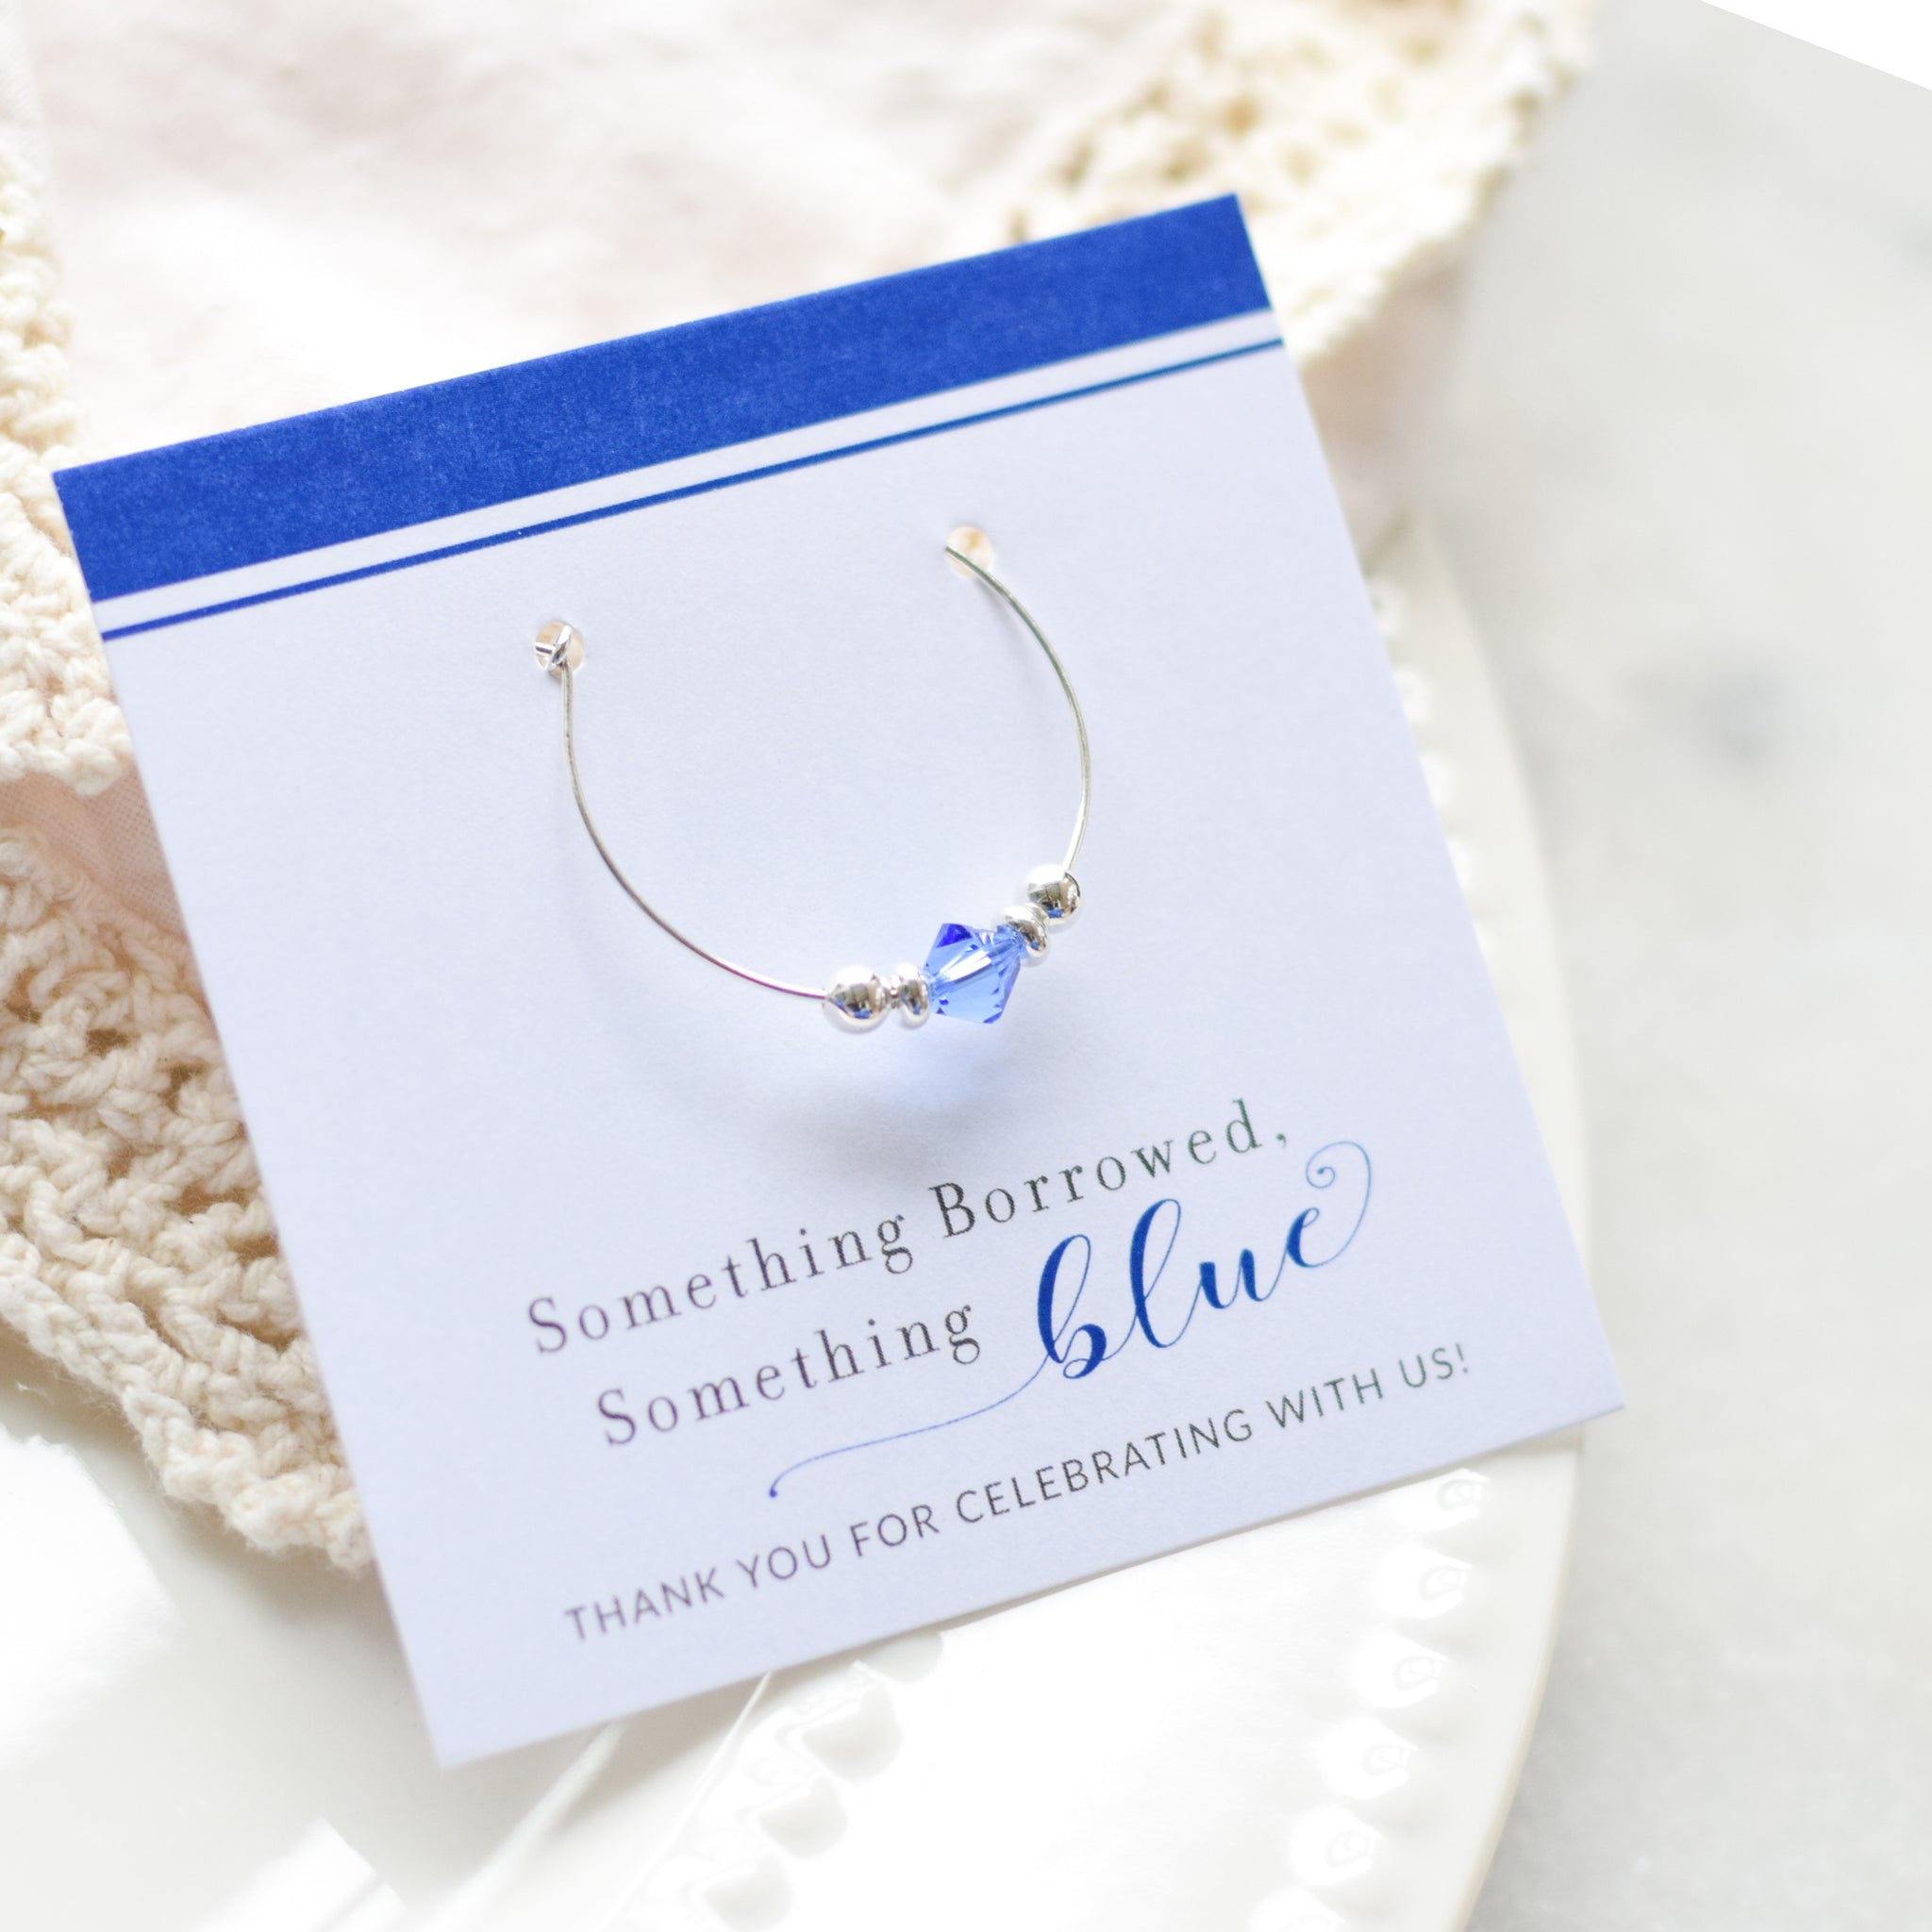 Something Blue Bridal Shower and Bachelorette Party Favors - Stemware Charms - @PlumPolkaDot